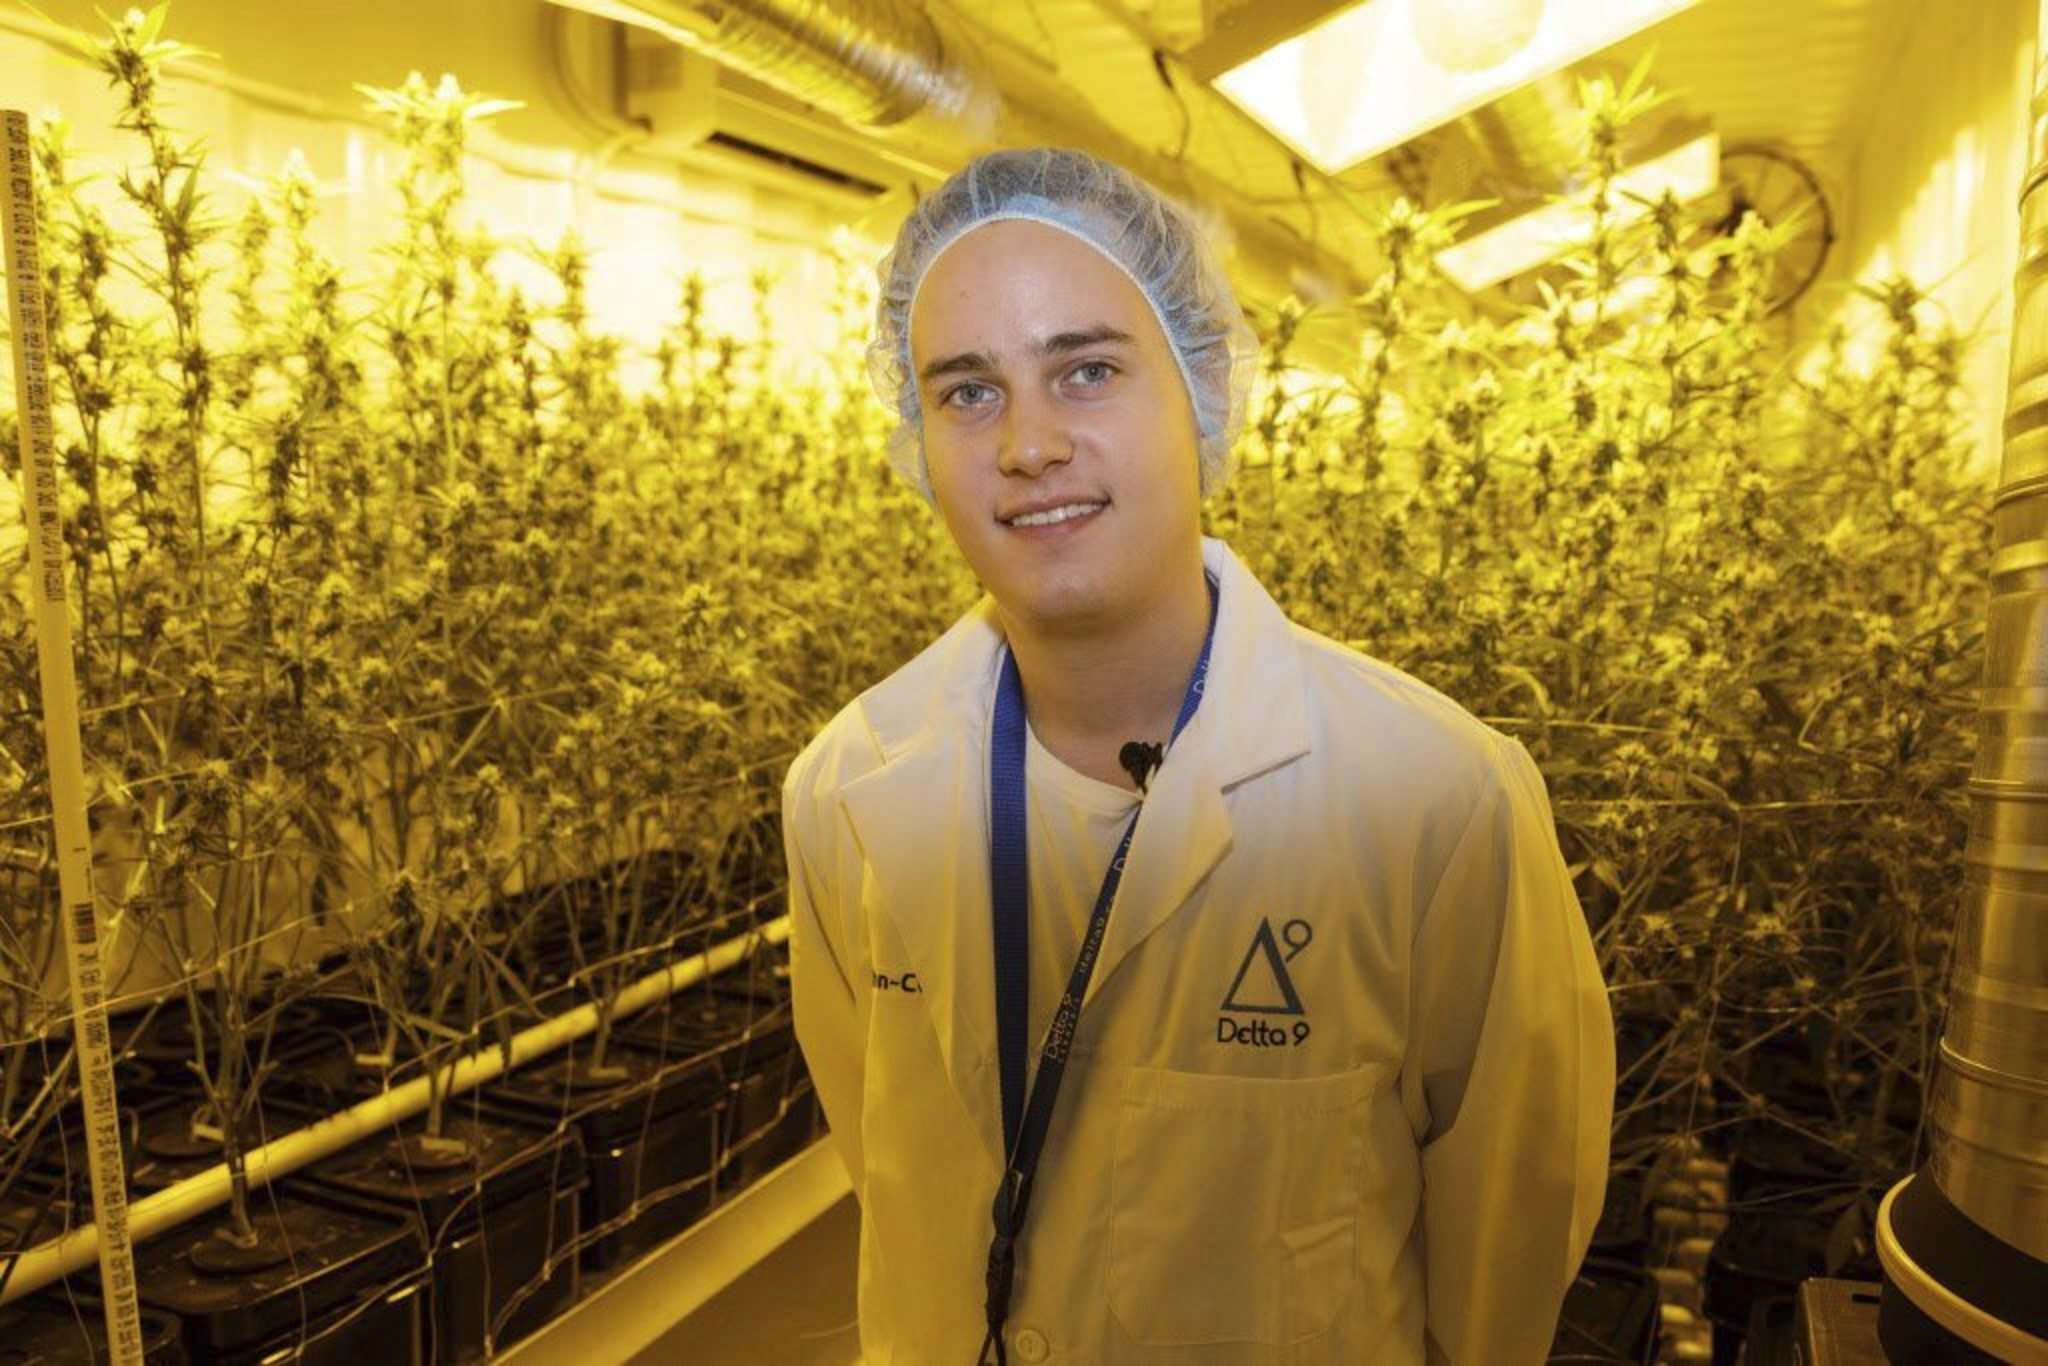 MIKE DEAL / WINNIPEG FREE PRESS files</p><p>John Arbuthnot, CEO of Delta 9 Cannabis</p></p>